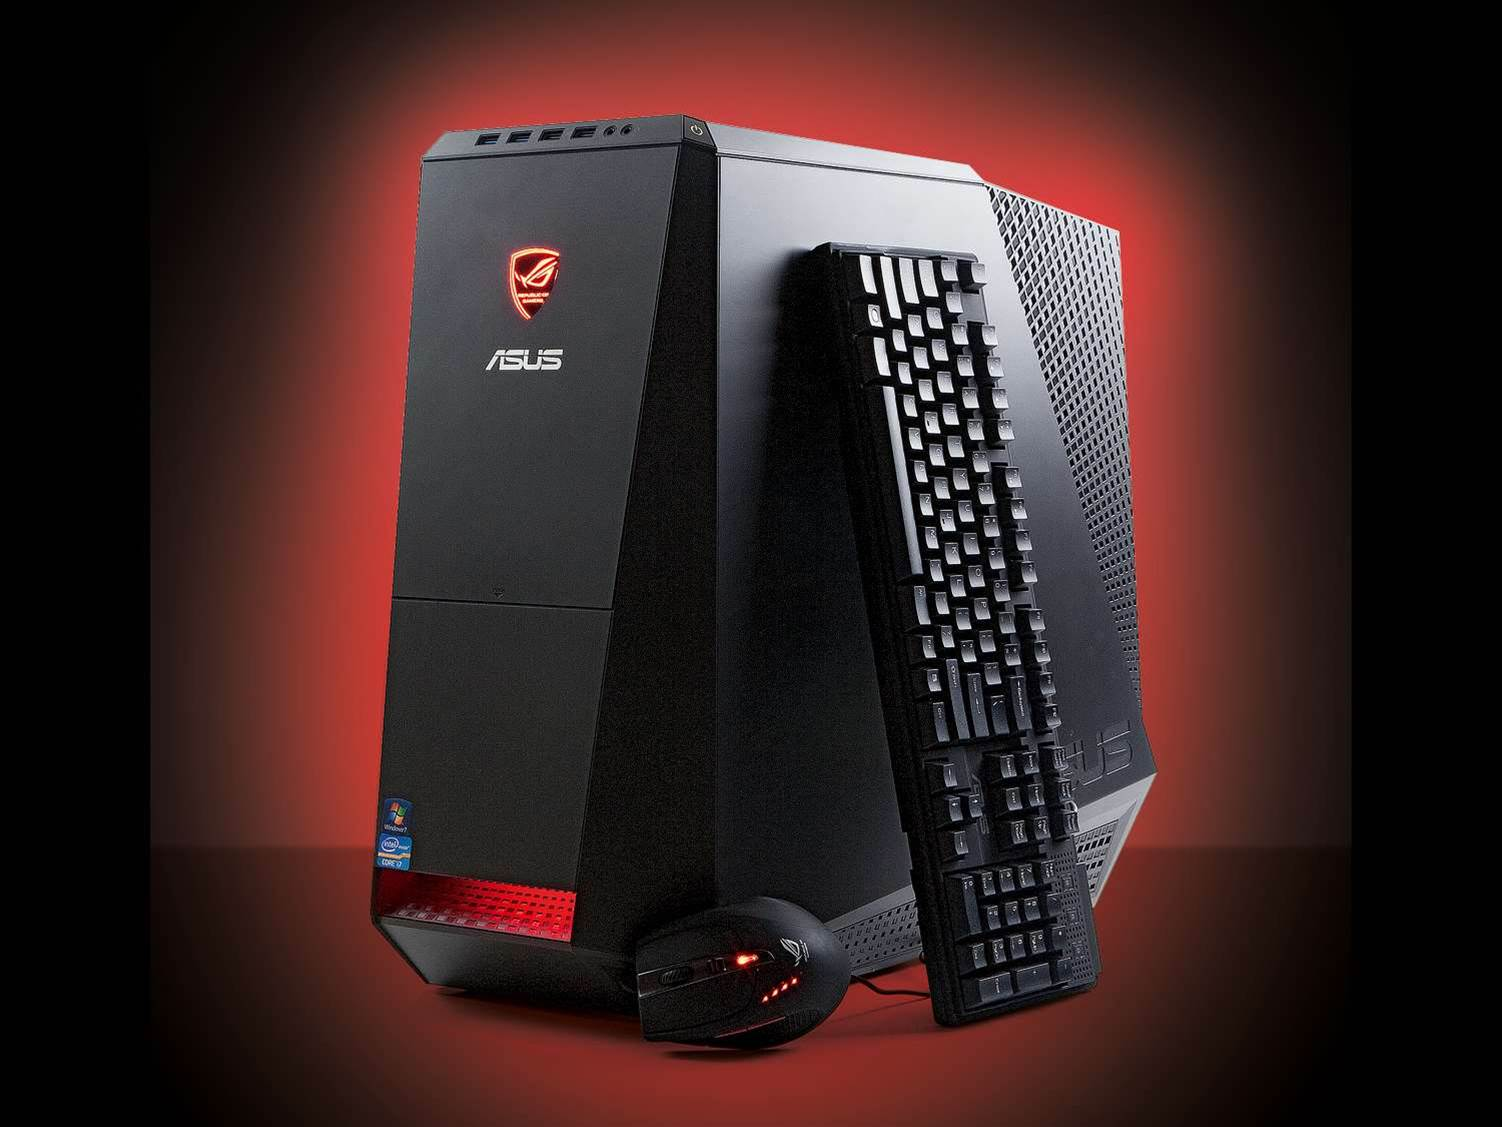 Reviewed: Asus ROG Tytan CG8568 (HE) gaming desktop